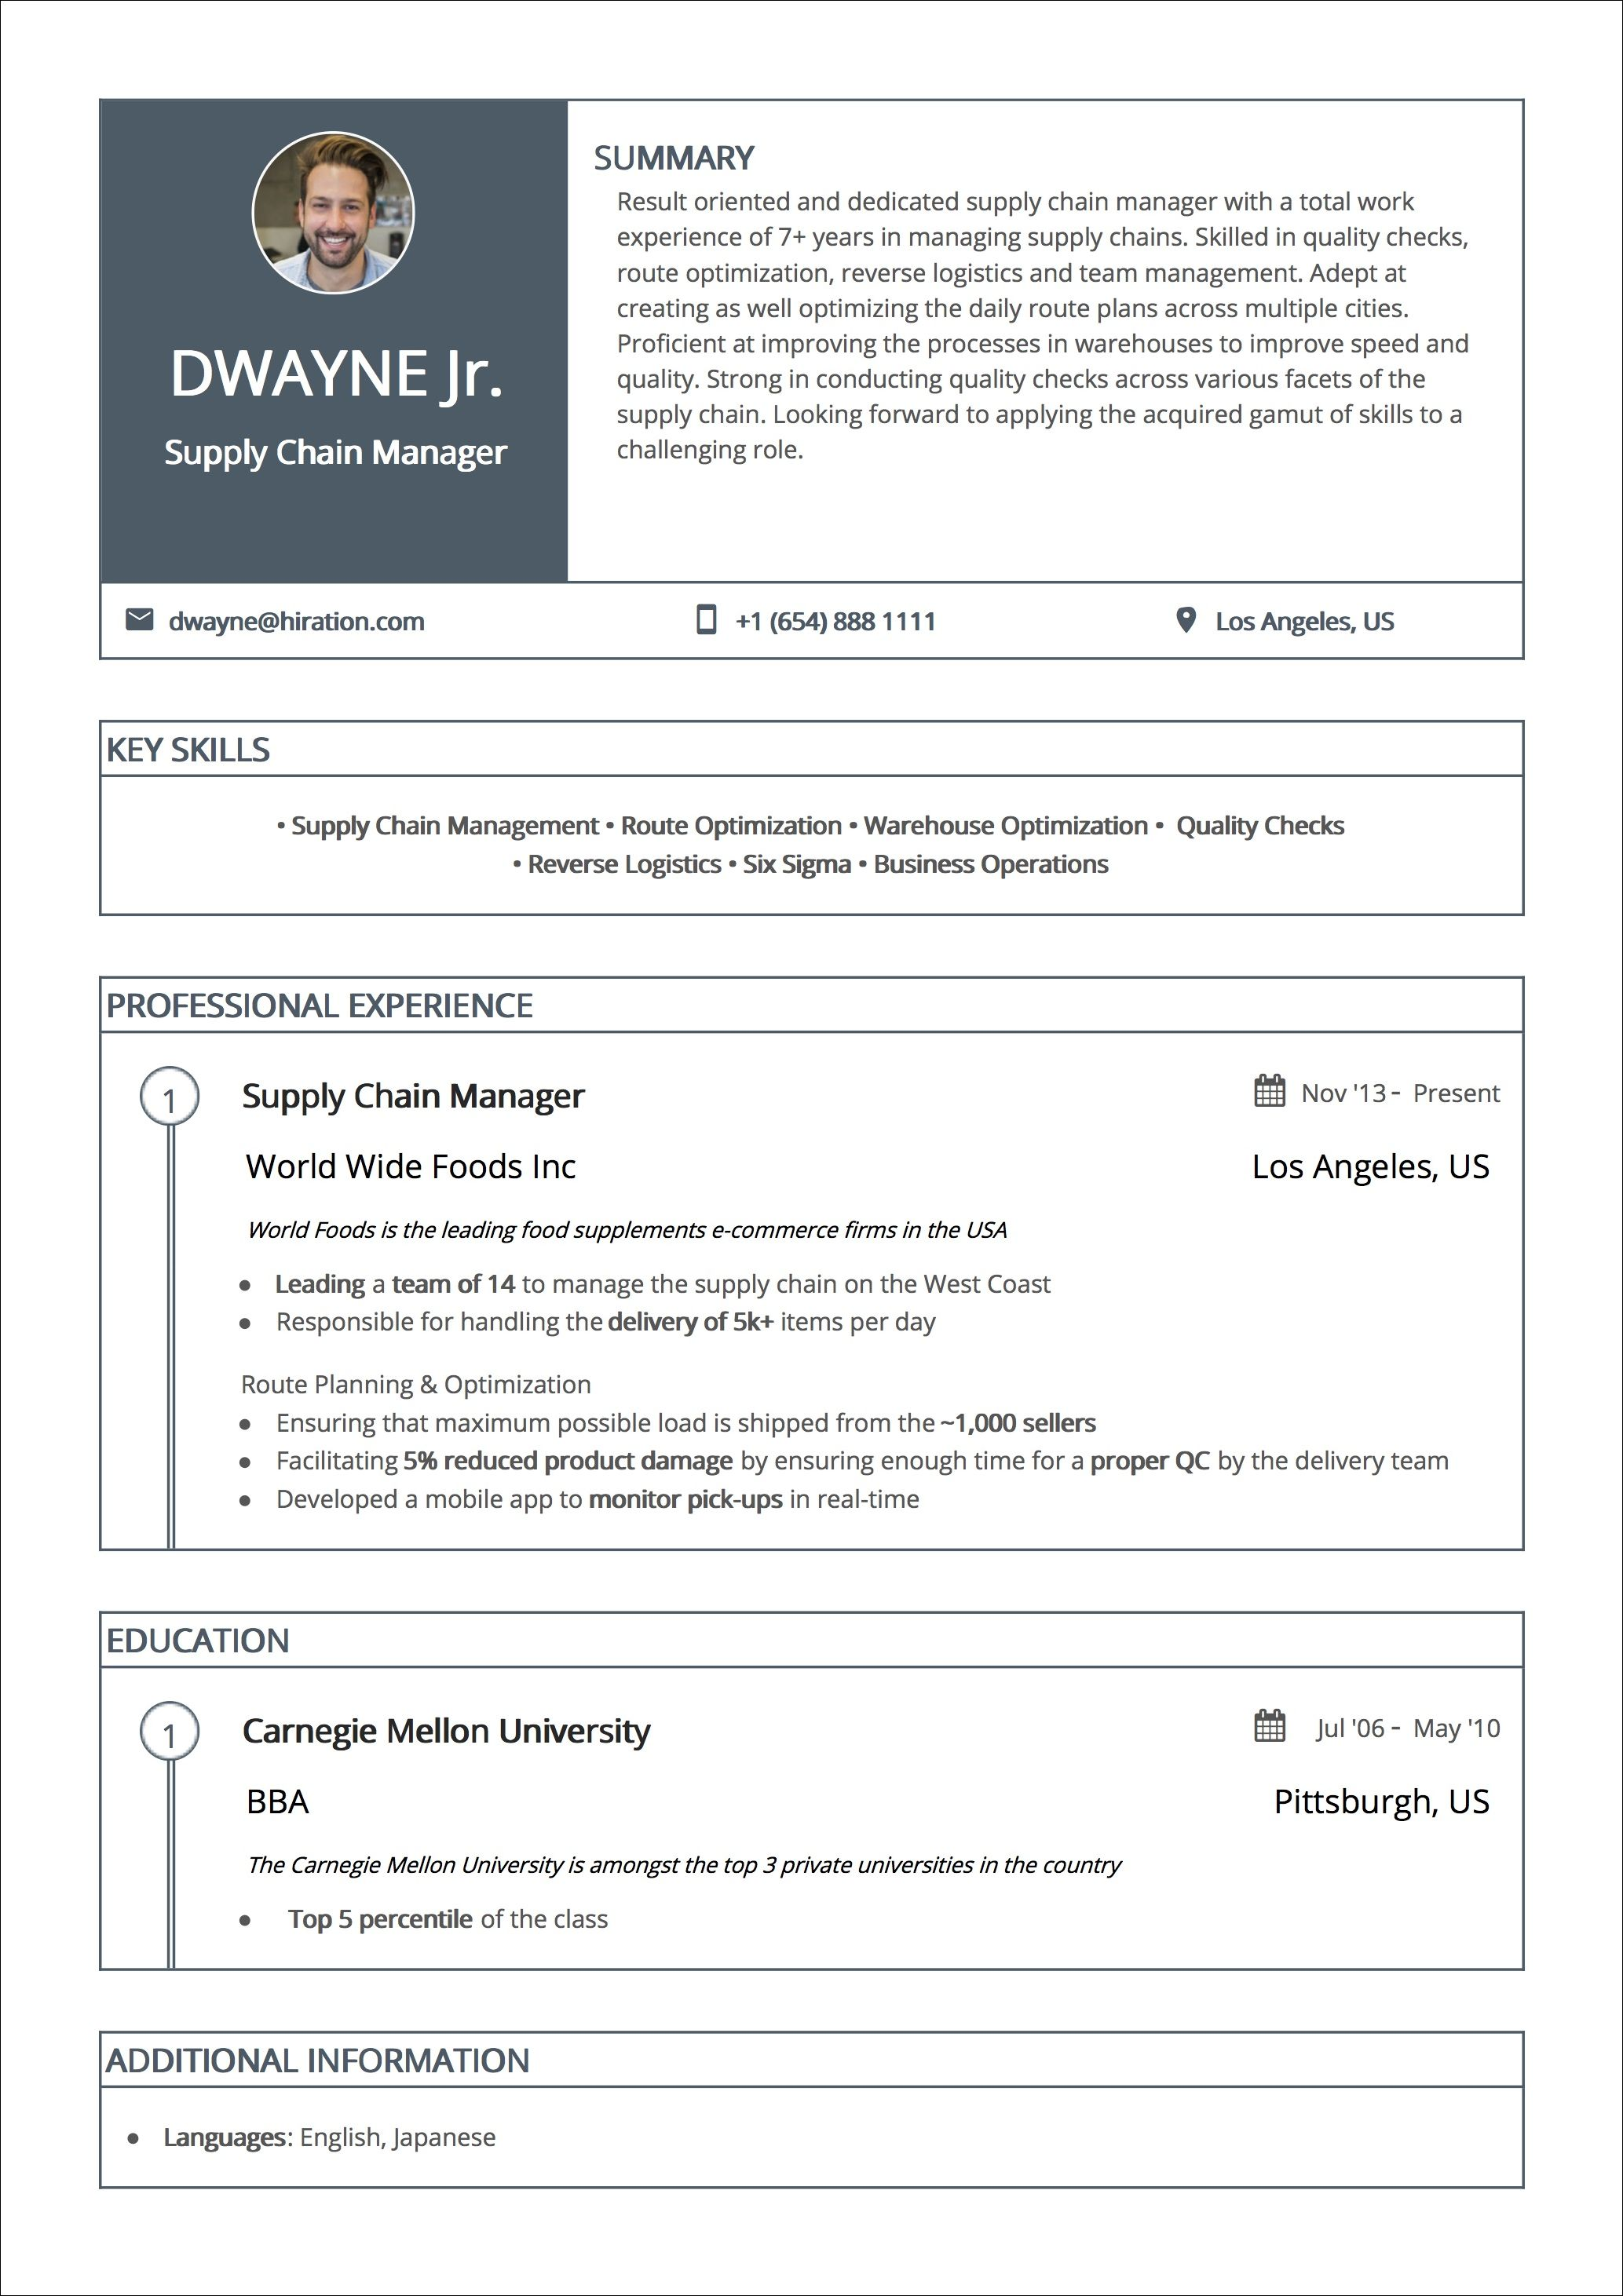 New york craigslist dating expert resume